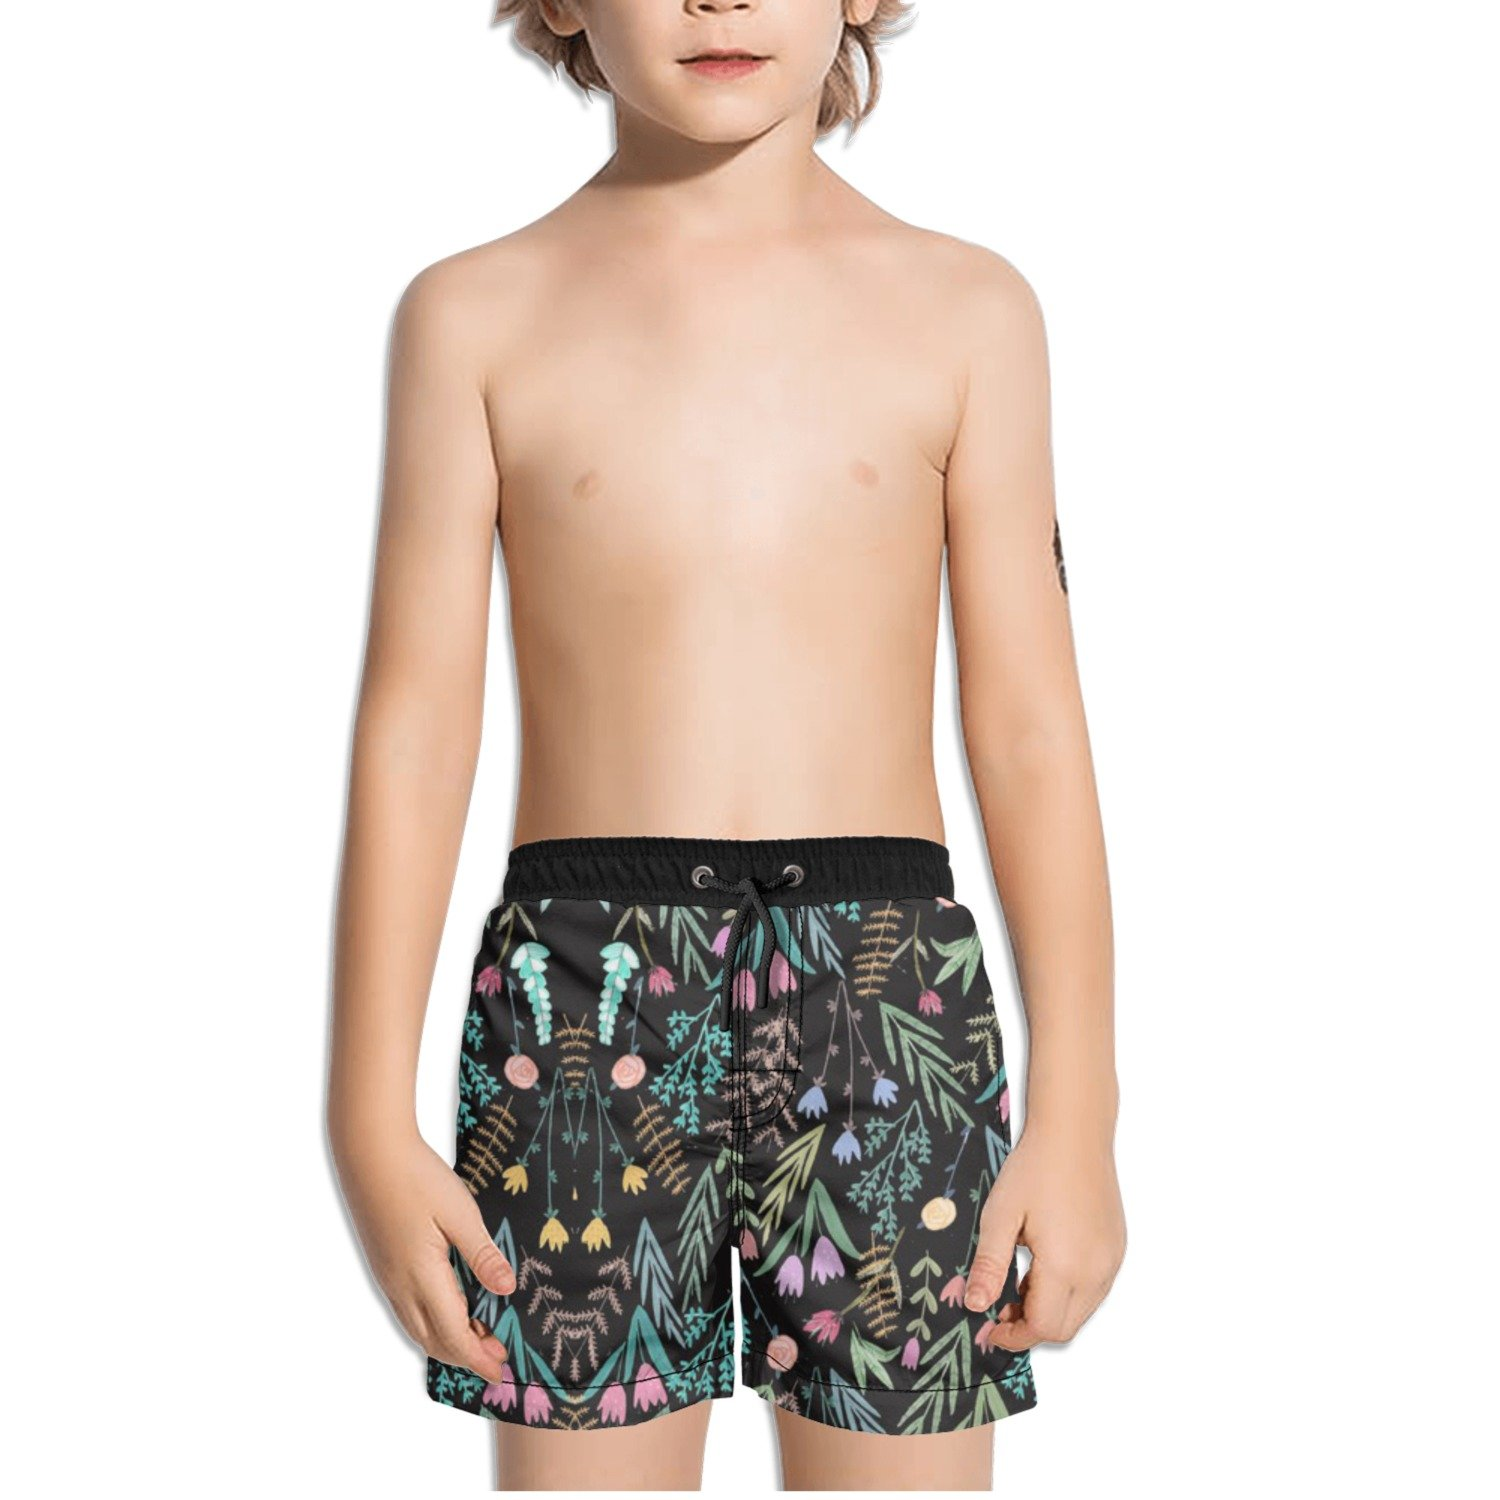 Ouxioaz Boys Swim Trunk Colorful Flowers Painting Beach Board Shorts